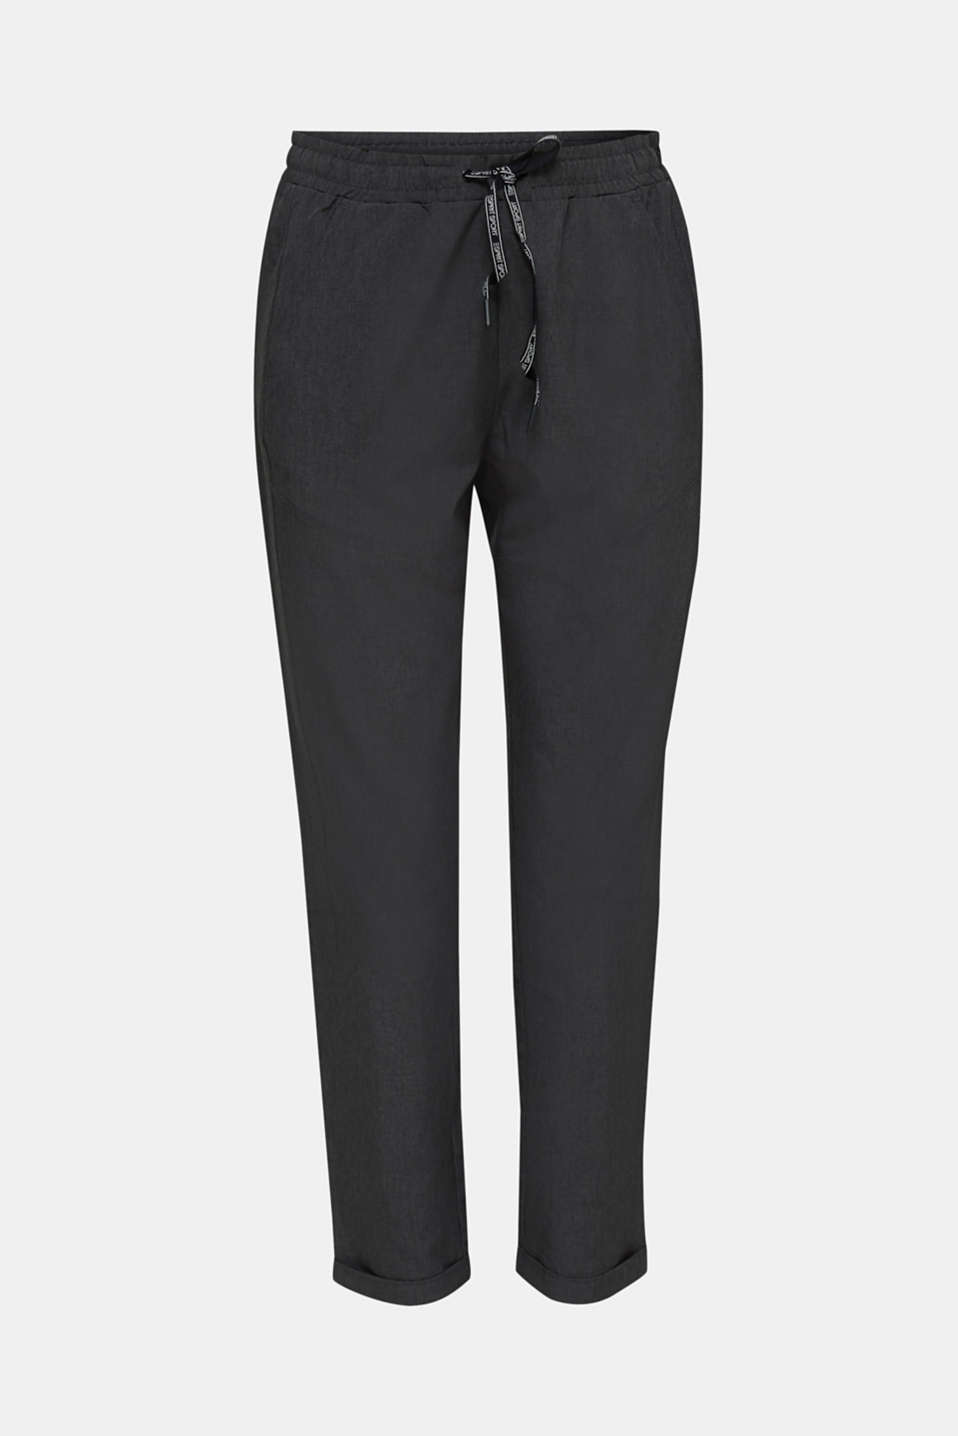 Melange woven trousers with stretch, E-DRY, ANTHRACITE 2, detail image number 7